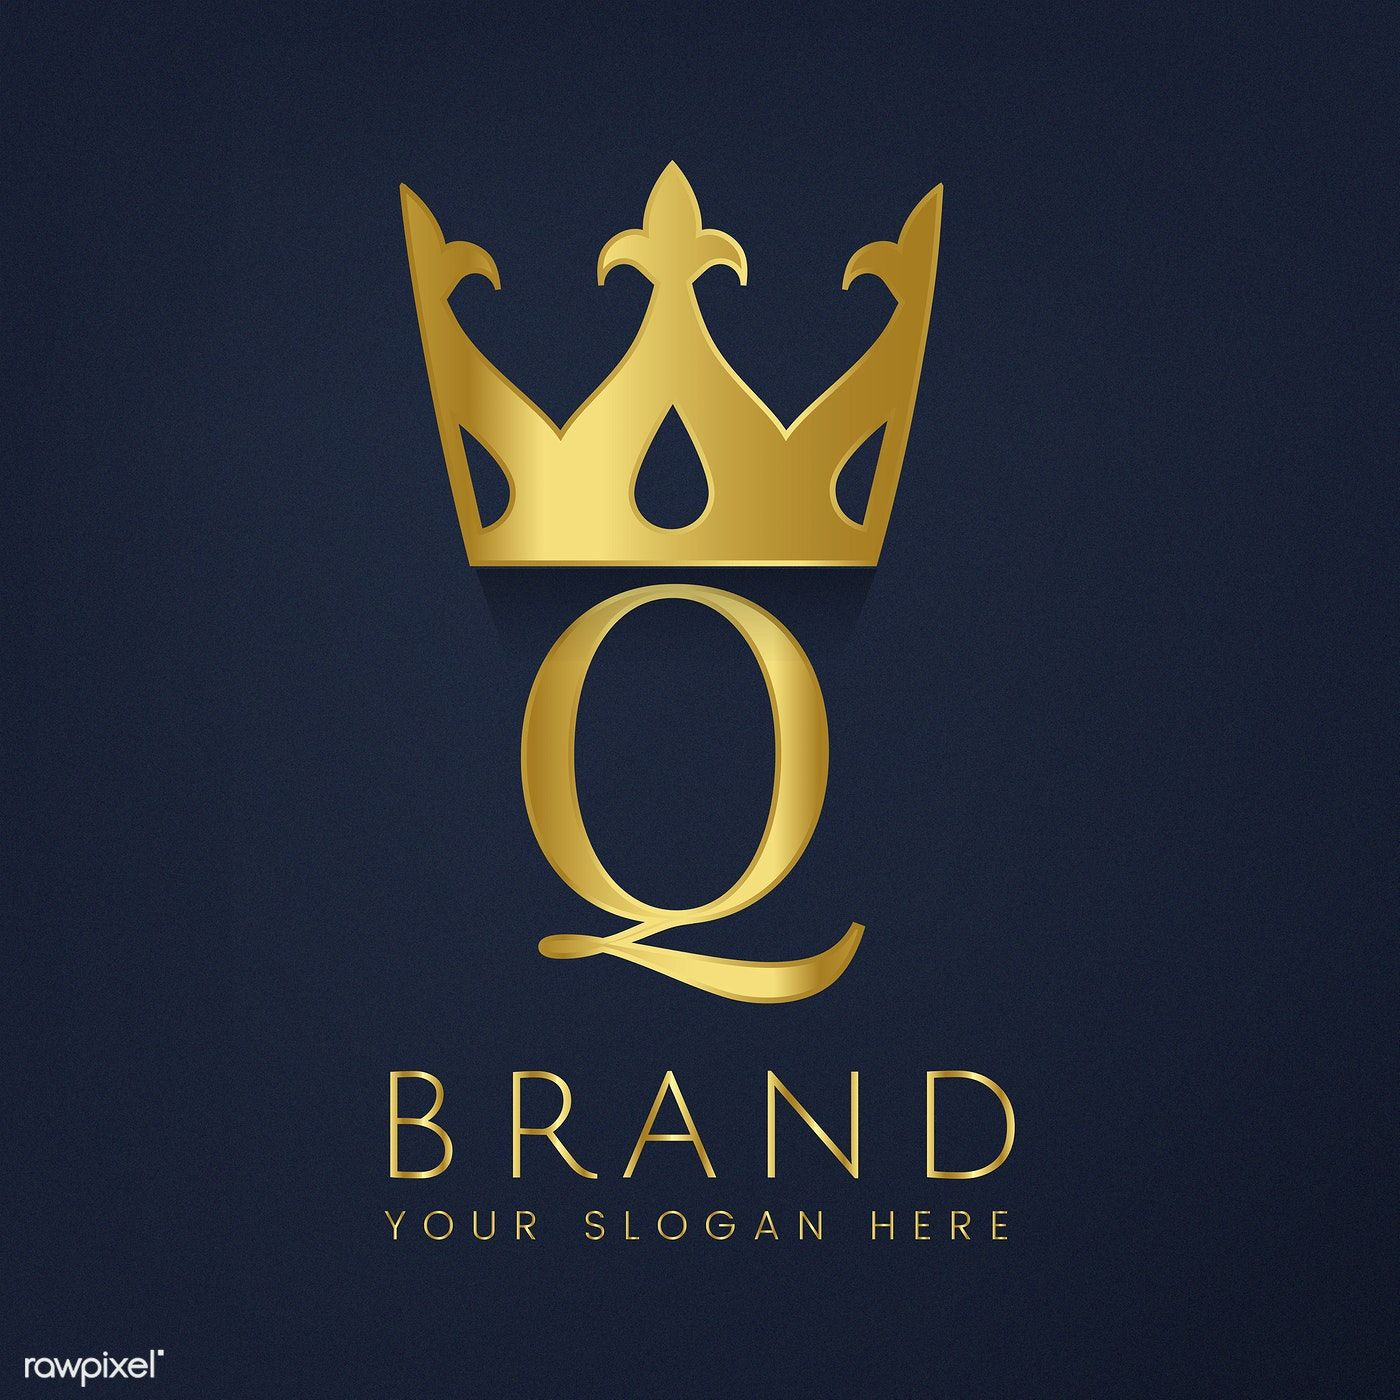 Premium Q brand creative vector free image by